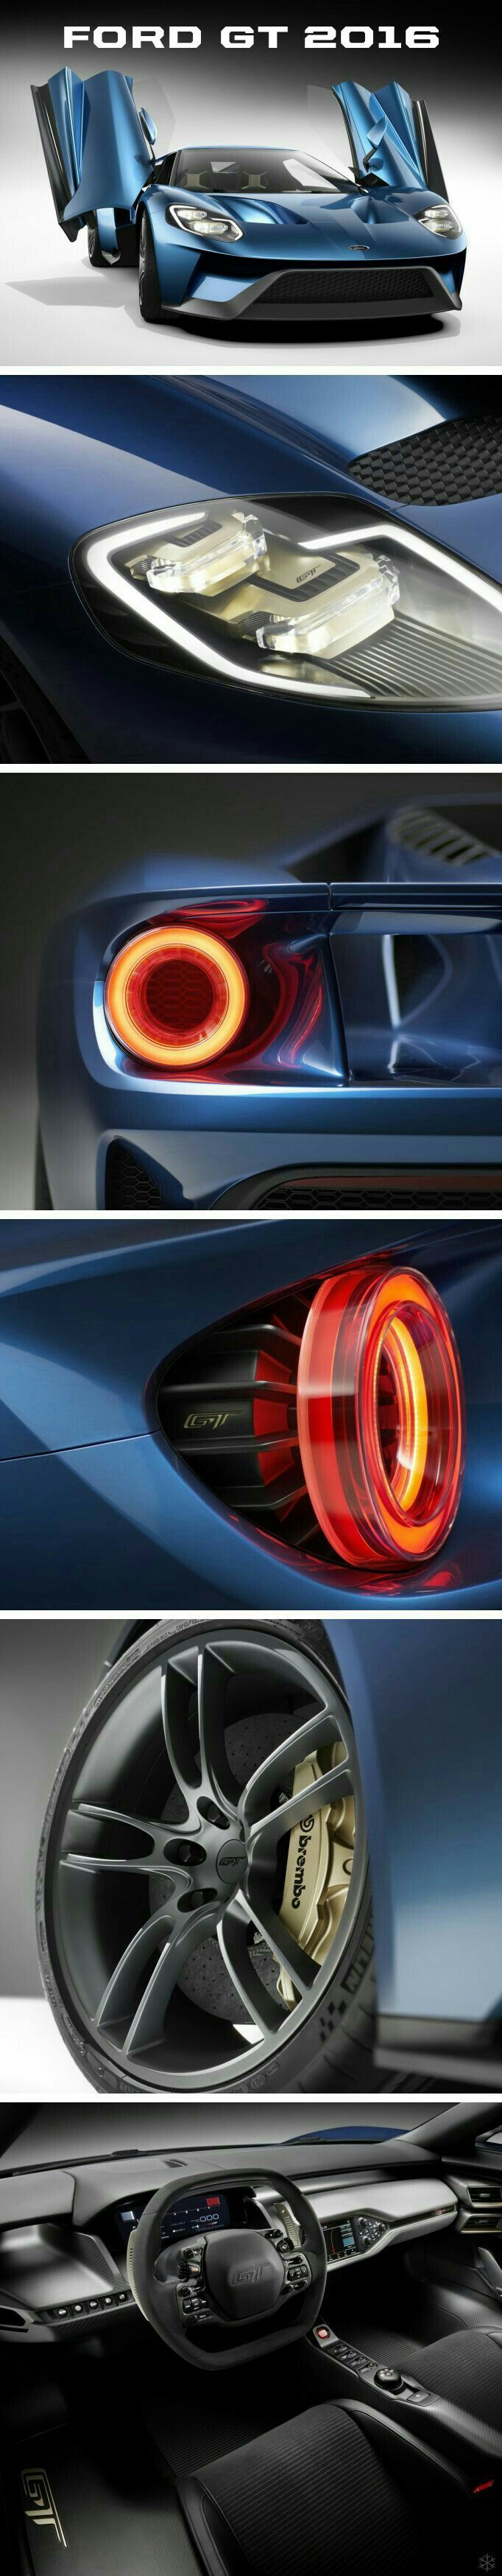 2016 ford gt sport blue wallpaper 2017 ford gt concept car beautiful - I Didn T Even Knew This Existed But I Want It Really Badly